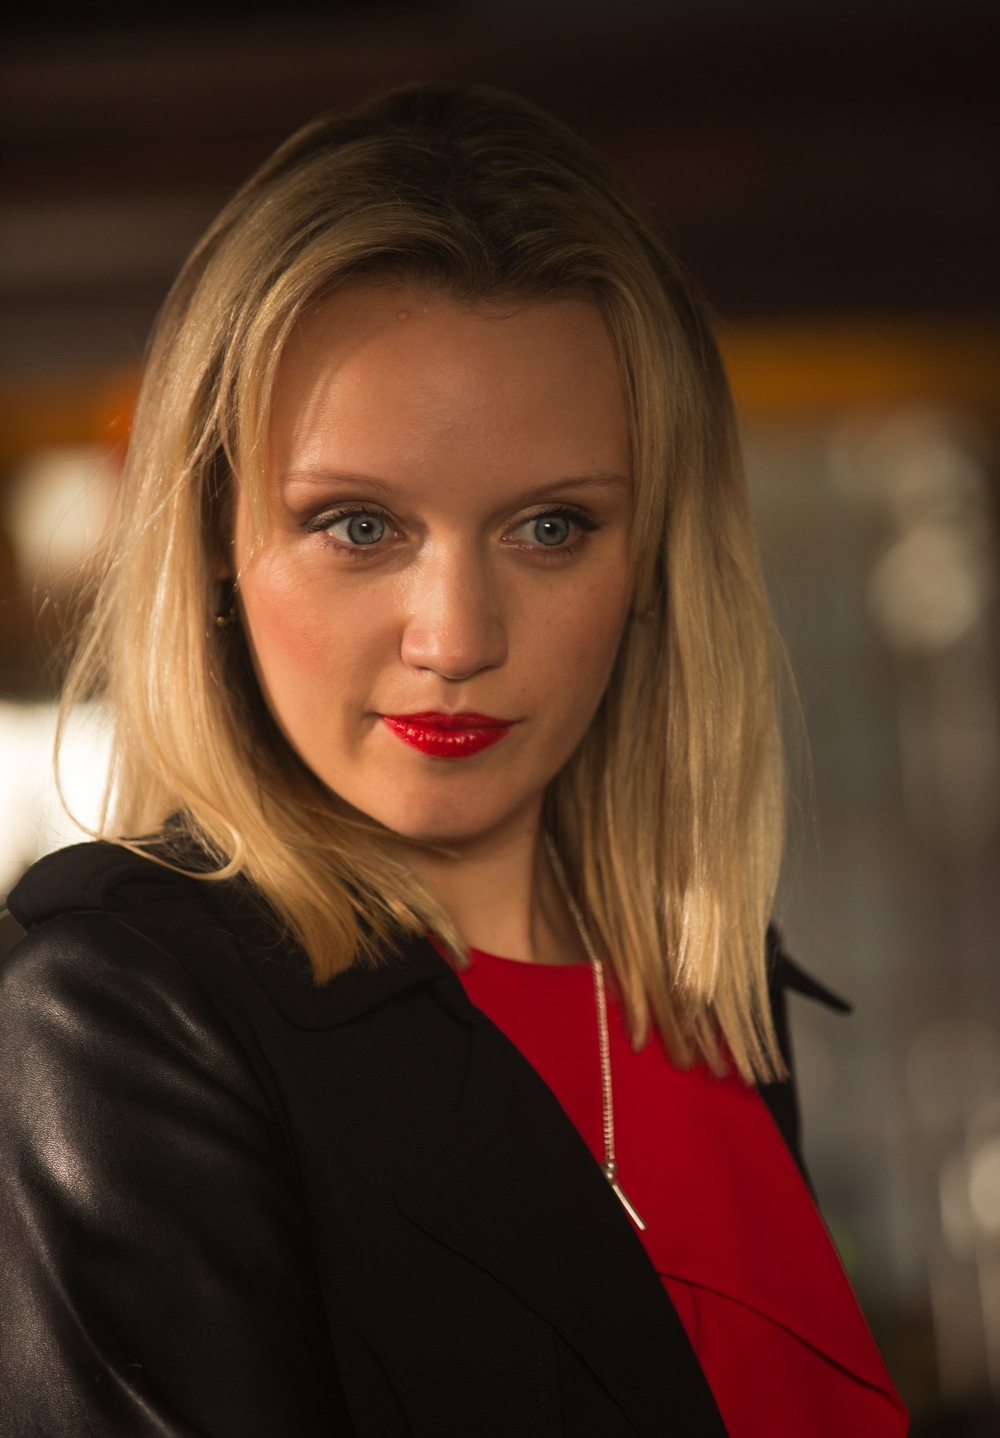 Images Emily Berrington nudes (16 foto and video), Topless, Is a cute, Twitter, cleavage 2020